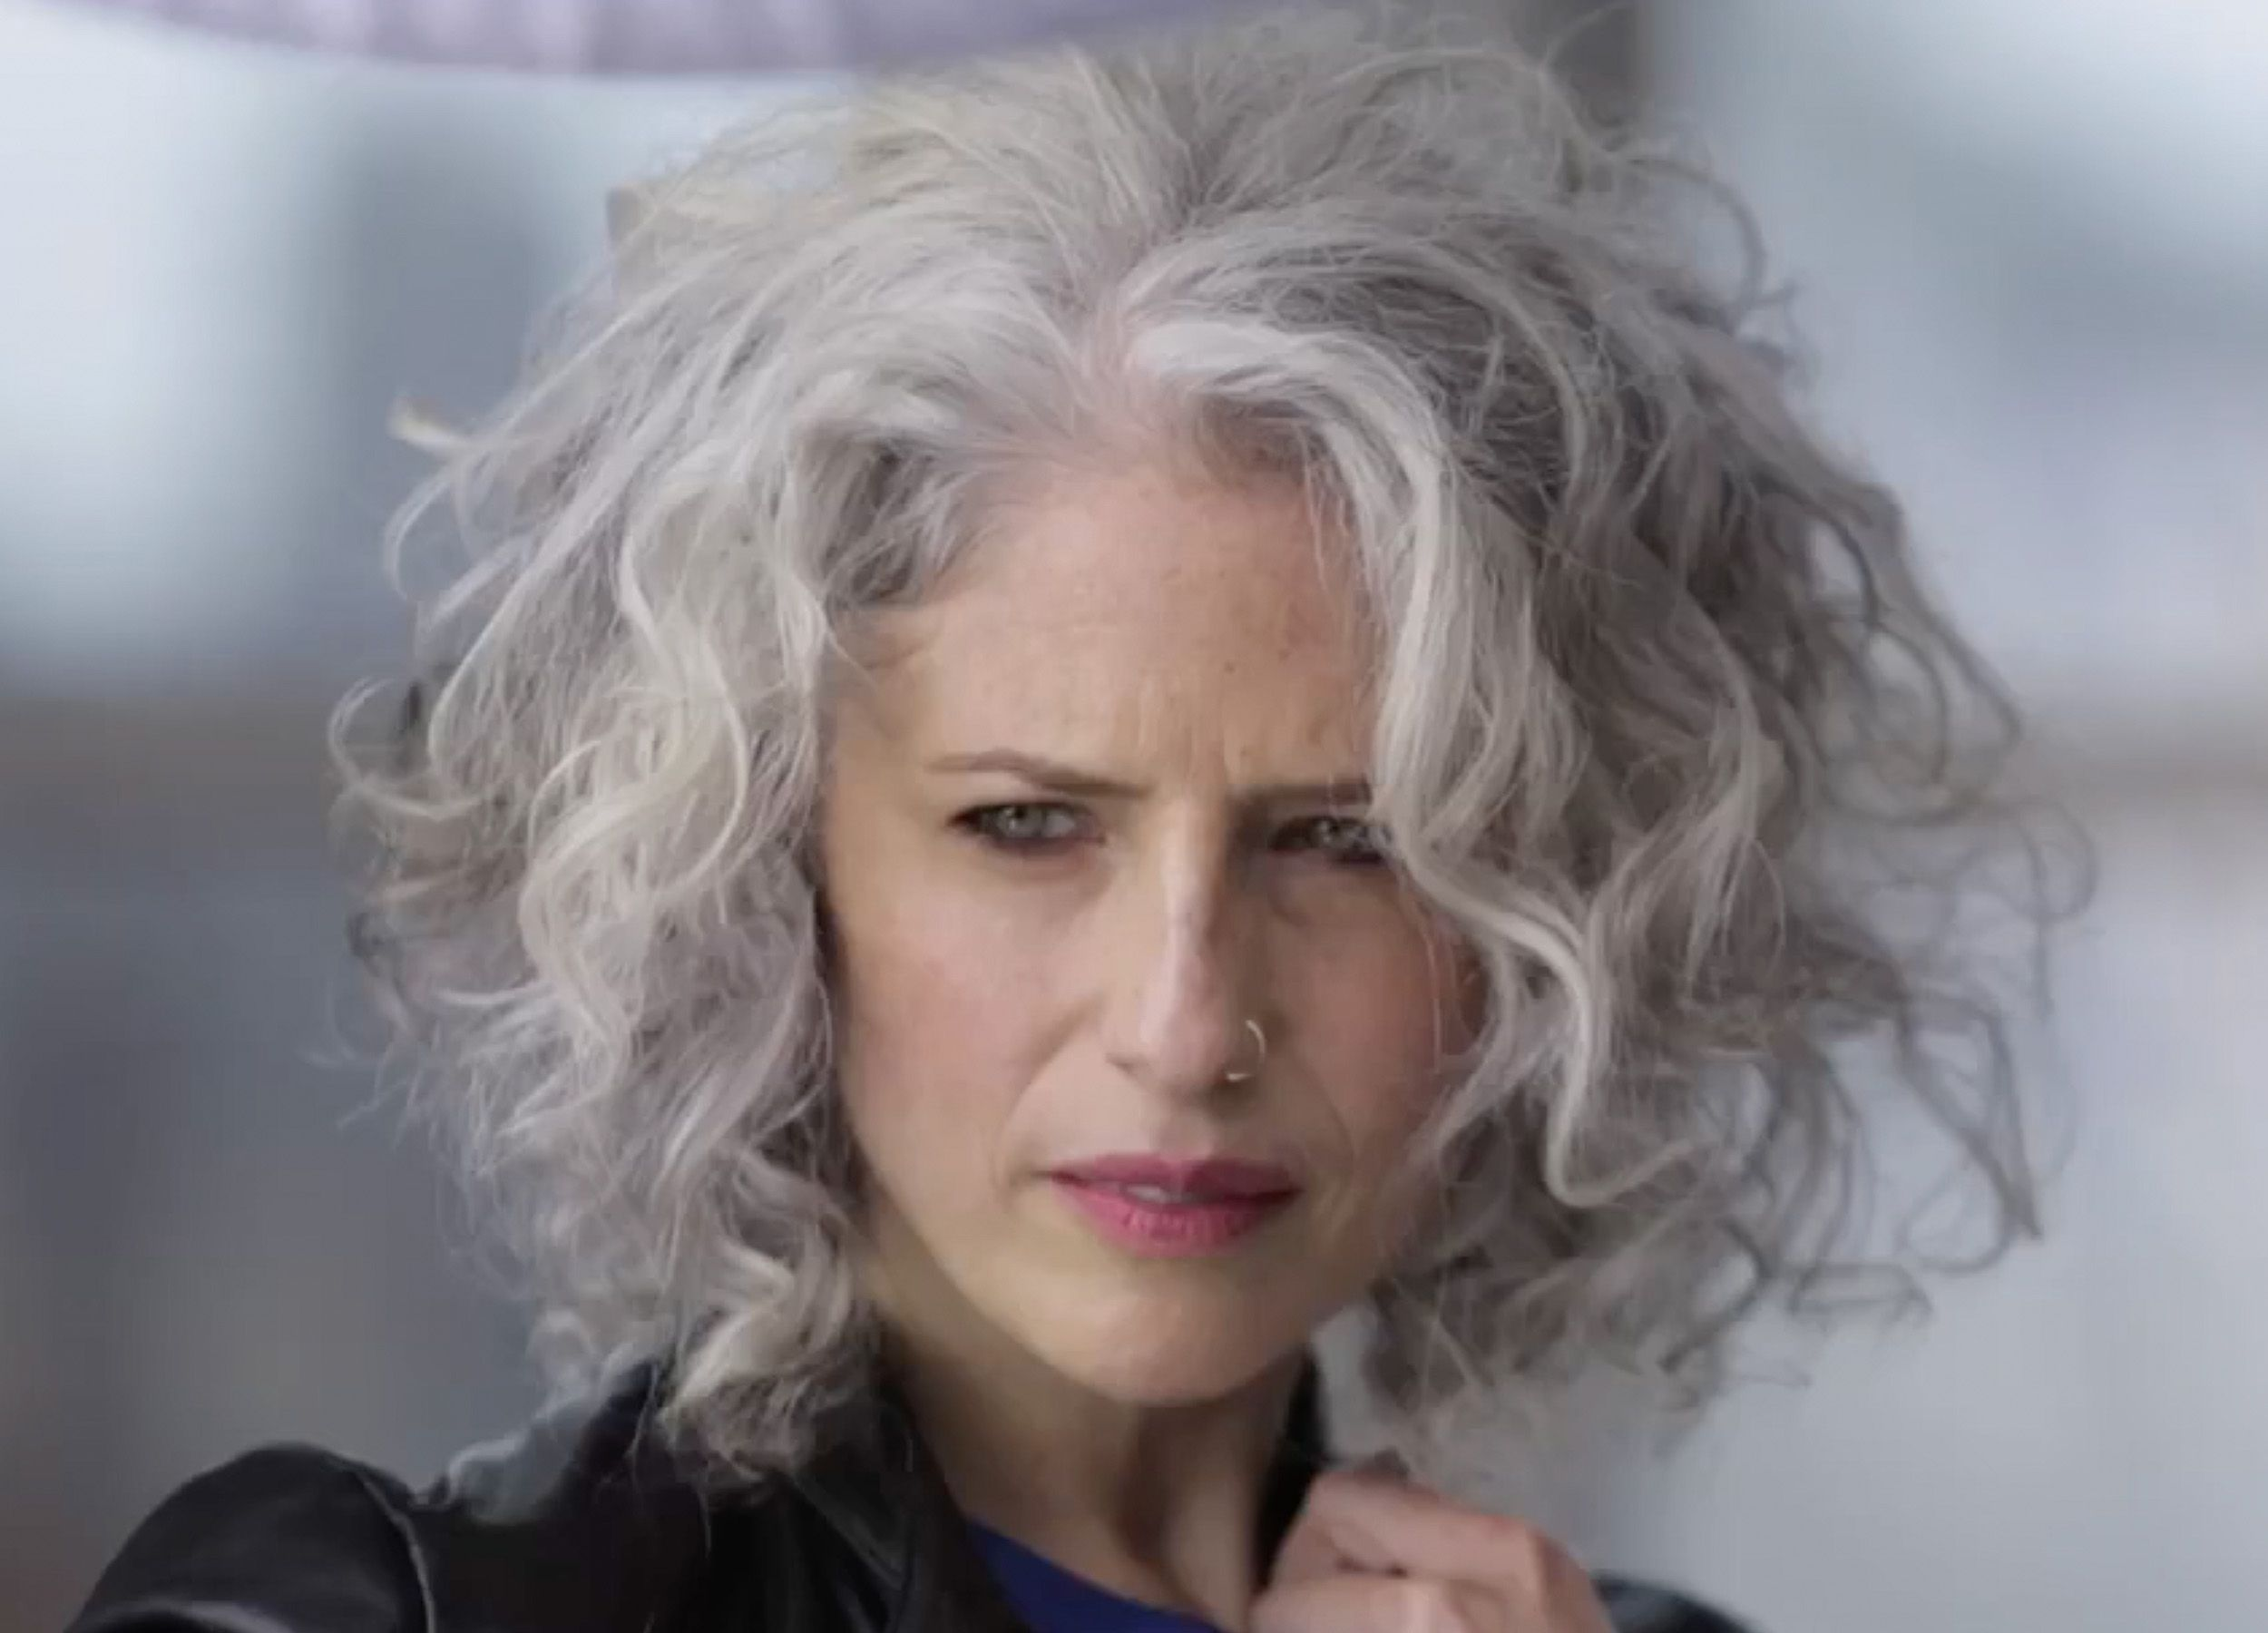 Oh My God This Silver Hair Style Is All My Dreams Come True Soft Curls And Beautiful Hair Tones Perfect Grey Curly Hair Curly Hair Styles Natural Gray Hair